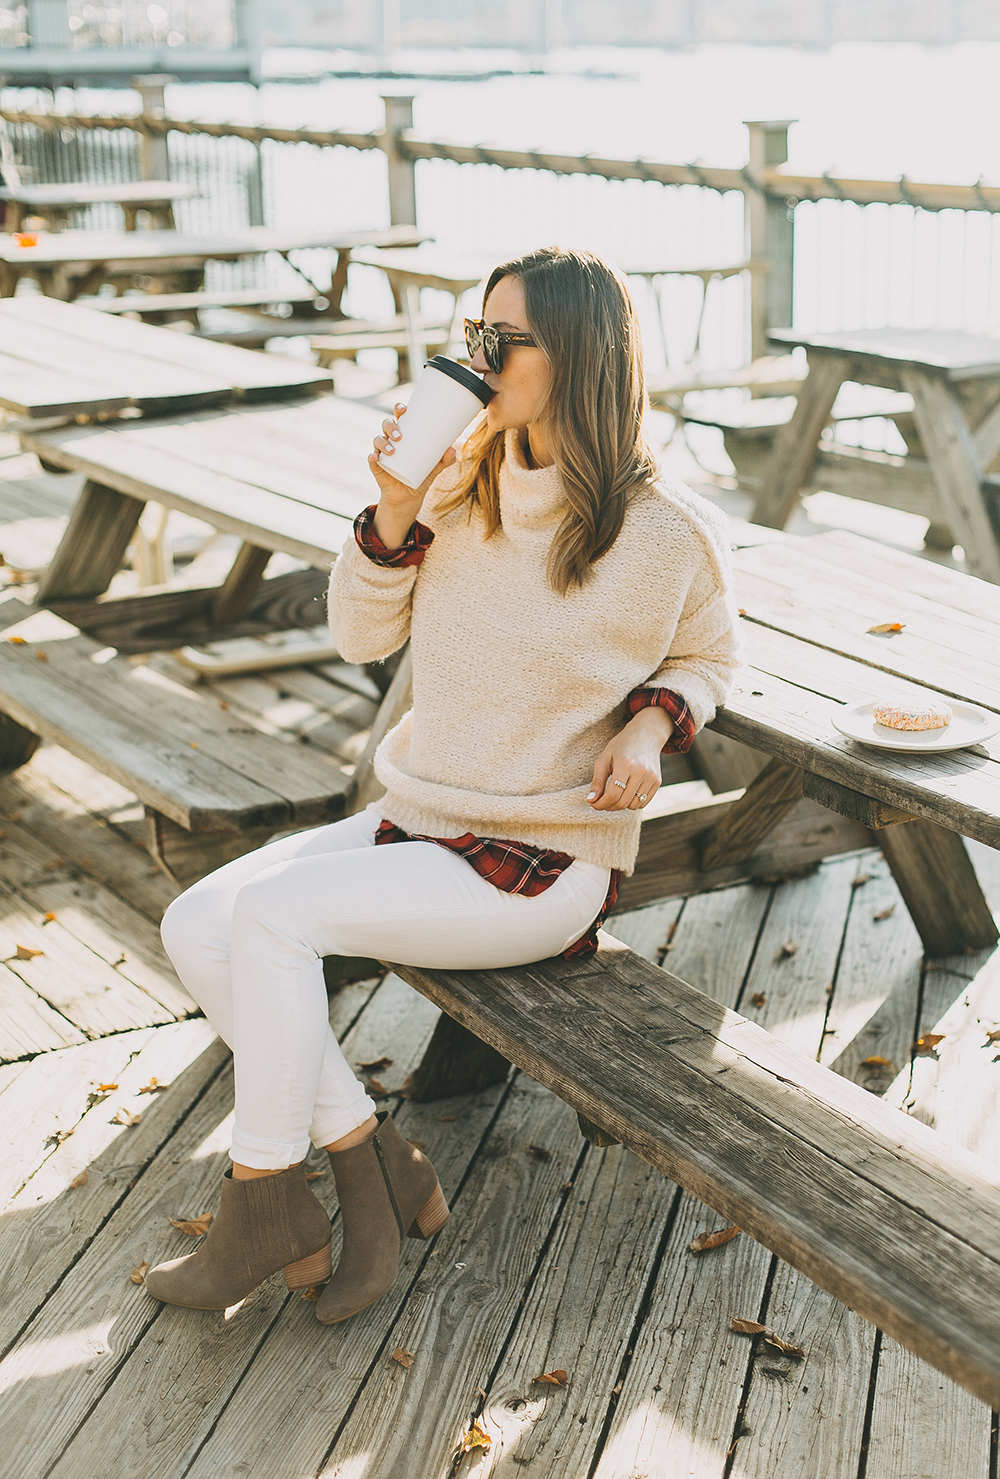 livvyland-blog-olivia-watson-austin-texas-fashion-style-blogger-knit-sweater-plaid-button-down-layer-white-jeans-mozarts-coffeehouse-5